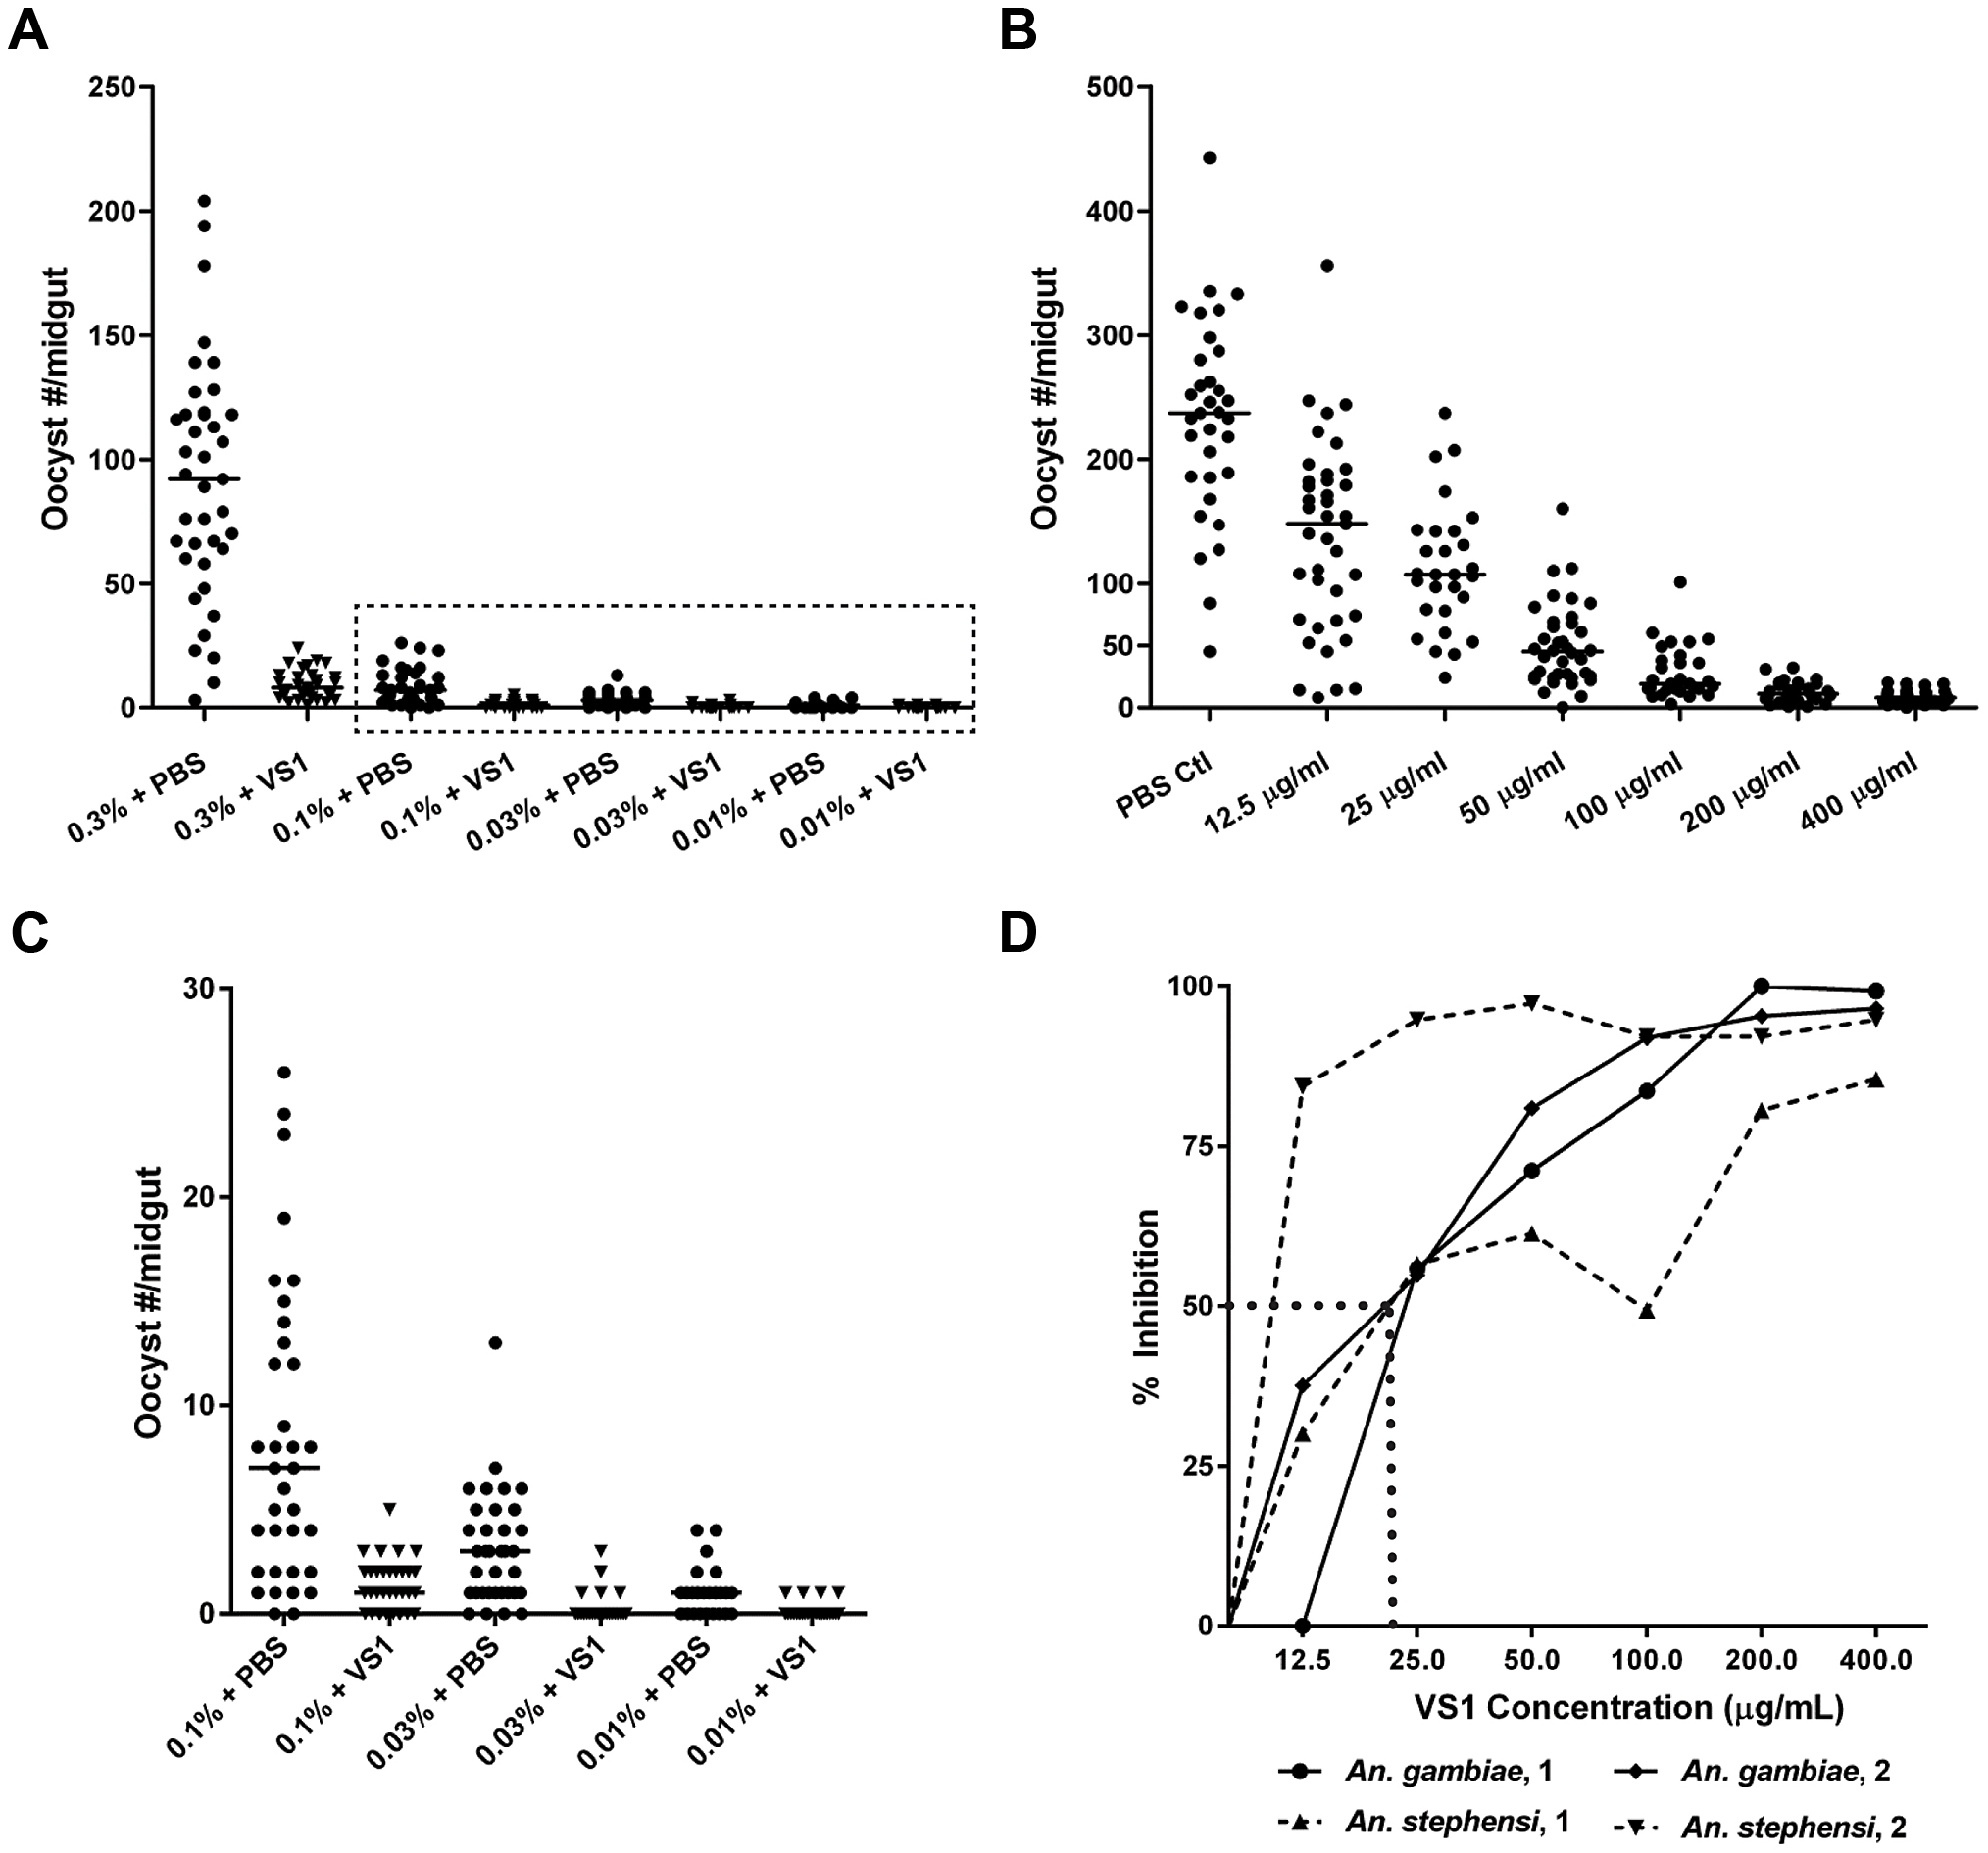 Dose-ranging experiments demonstrate consistent dose-response relationships between gametocytemia, VS1, and percent inhibition of <i>Plasmodium</i> infection.